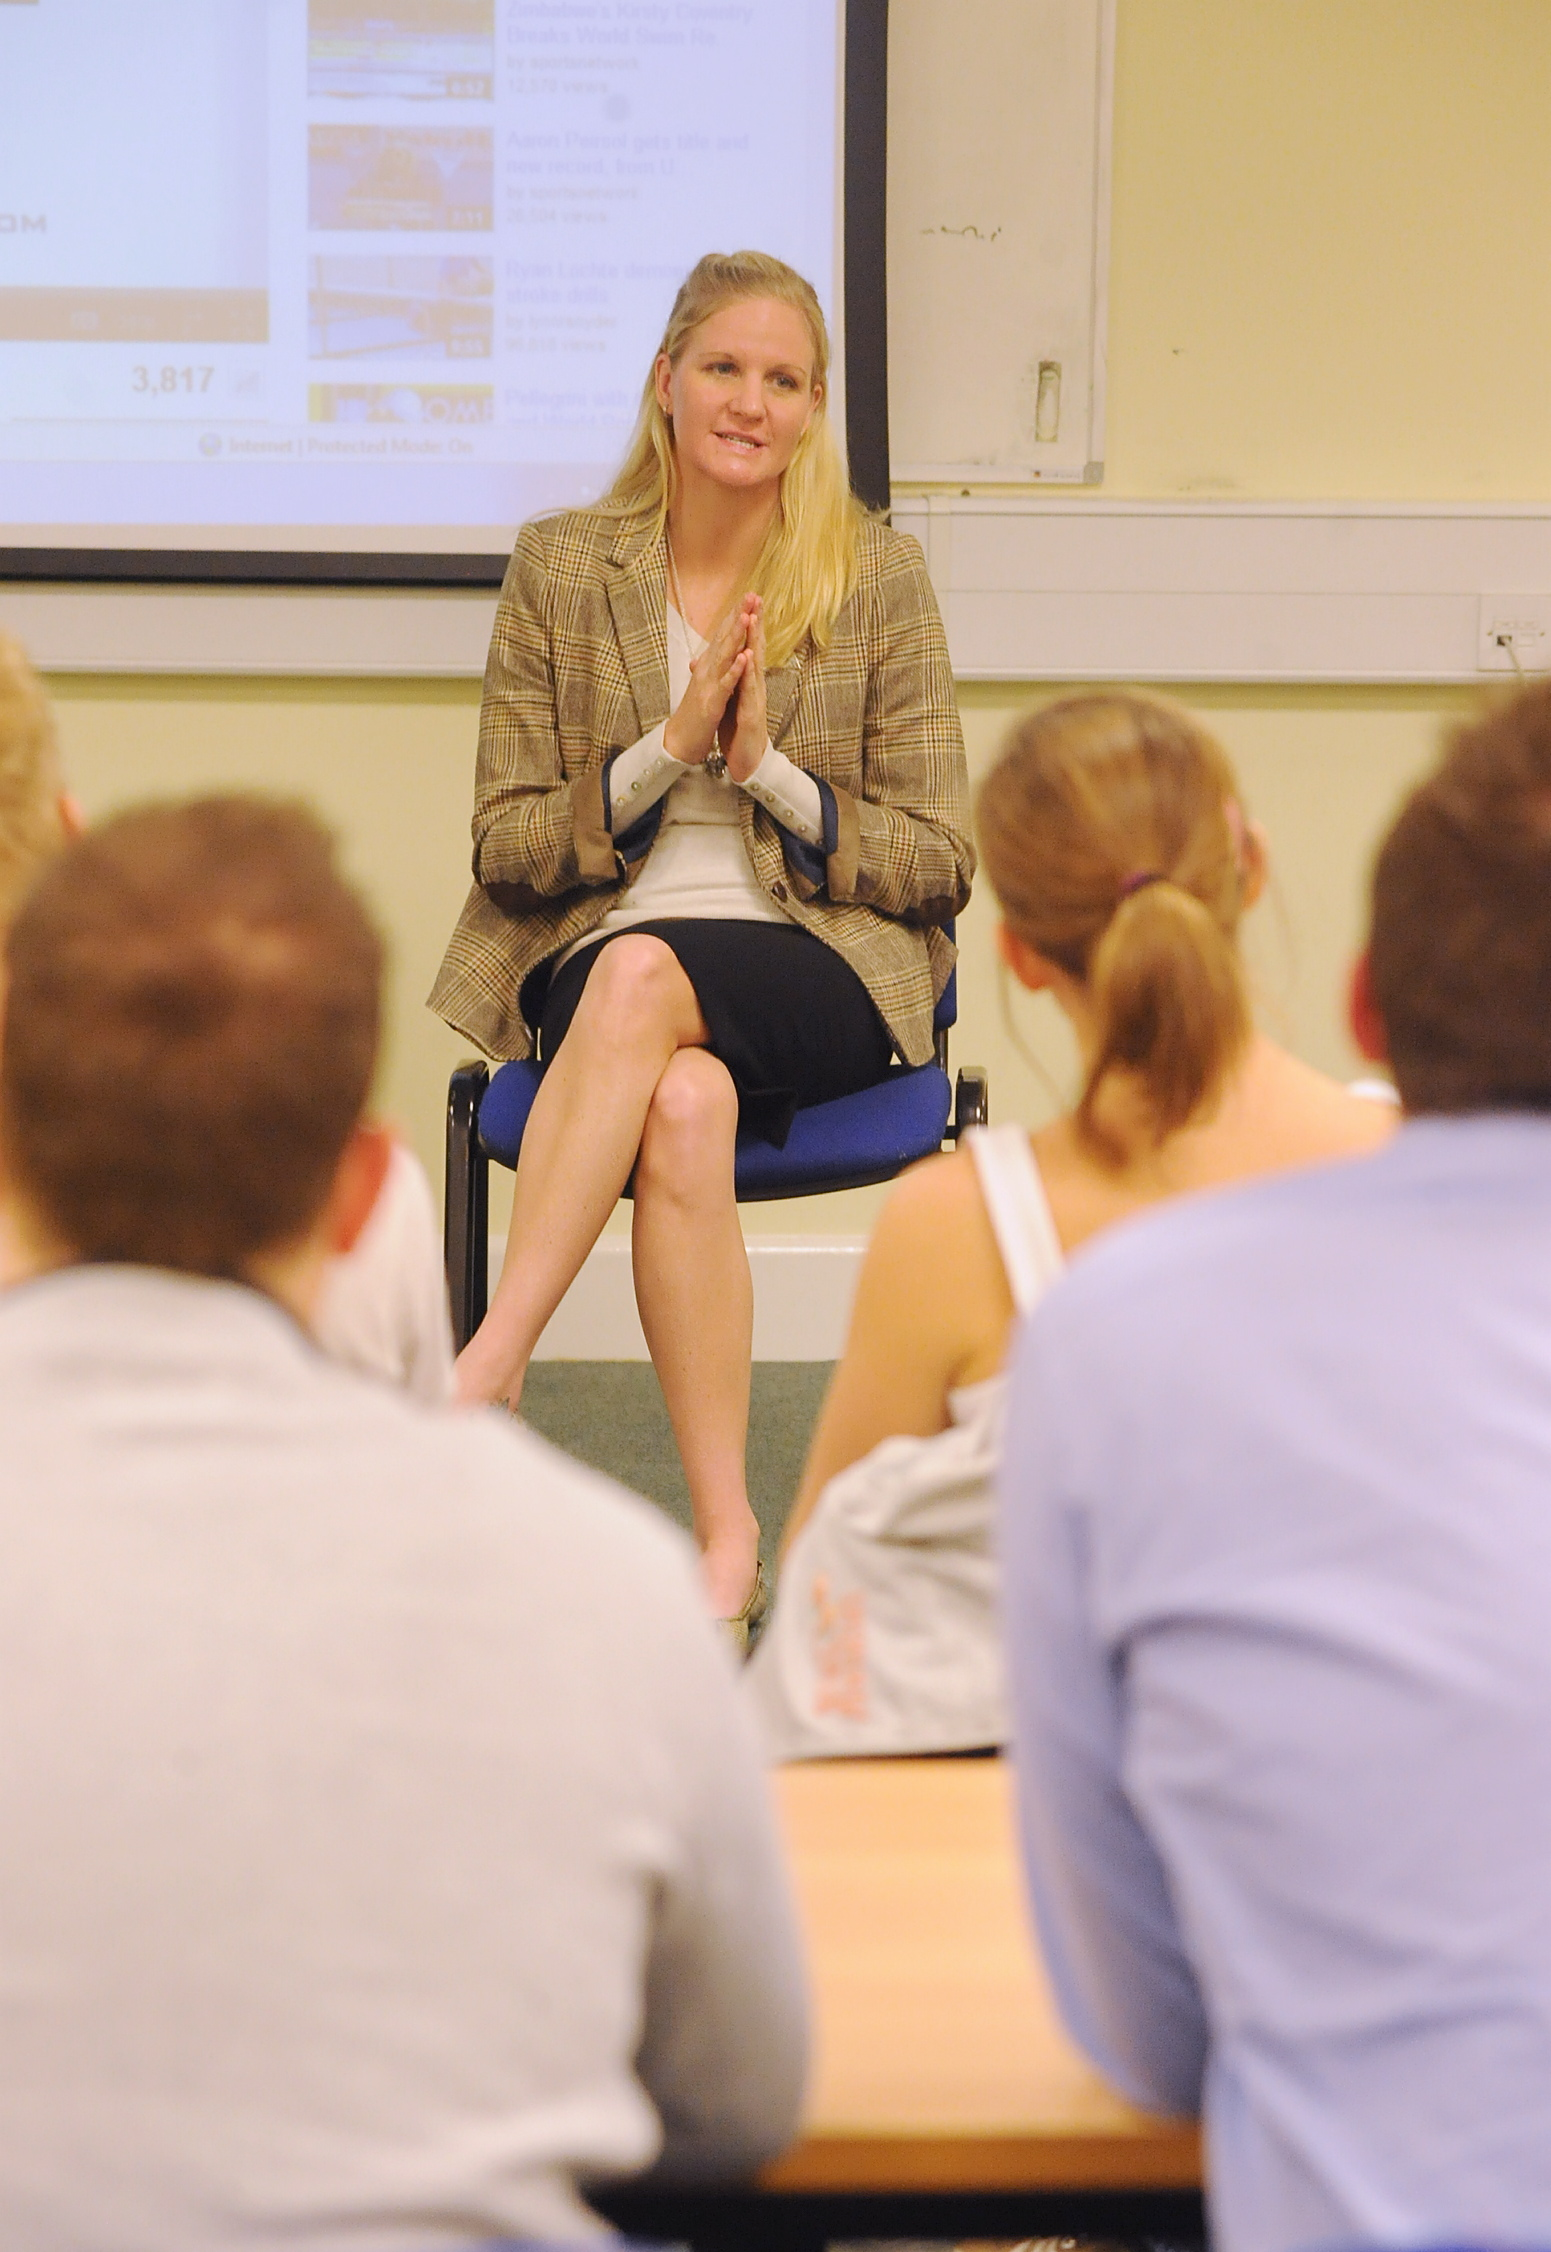 Kirsty-Coventry-public-speaking.jpg